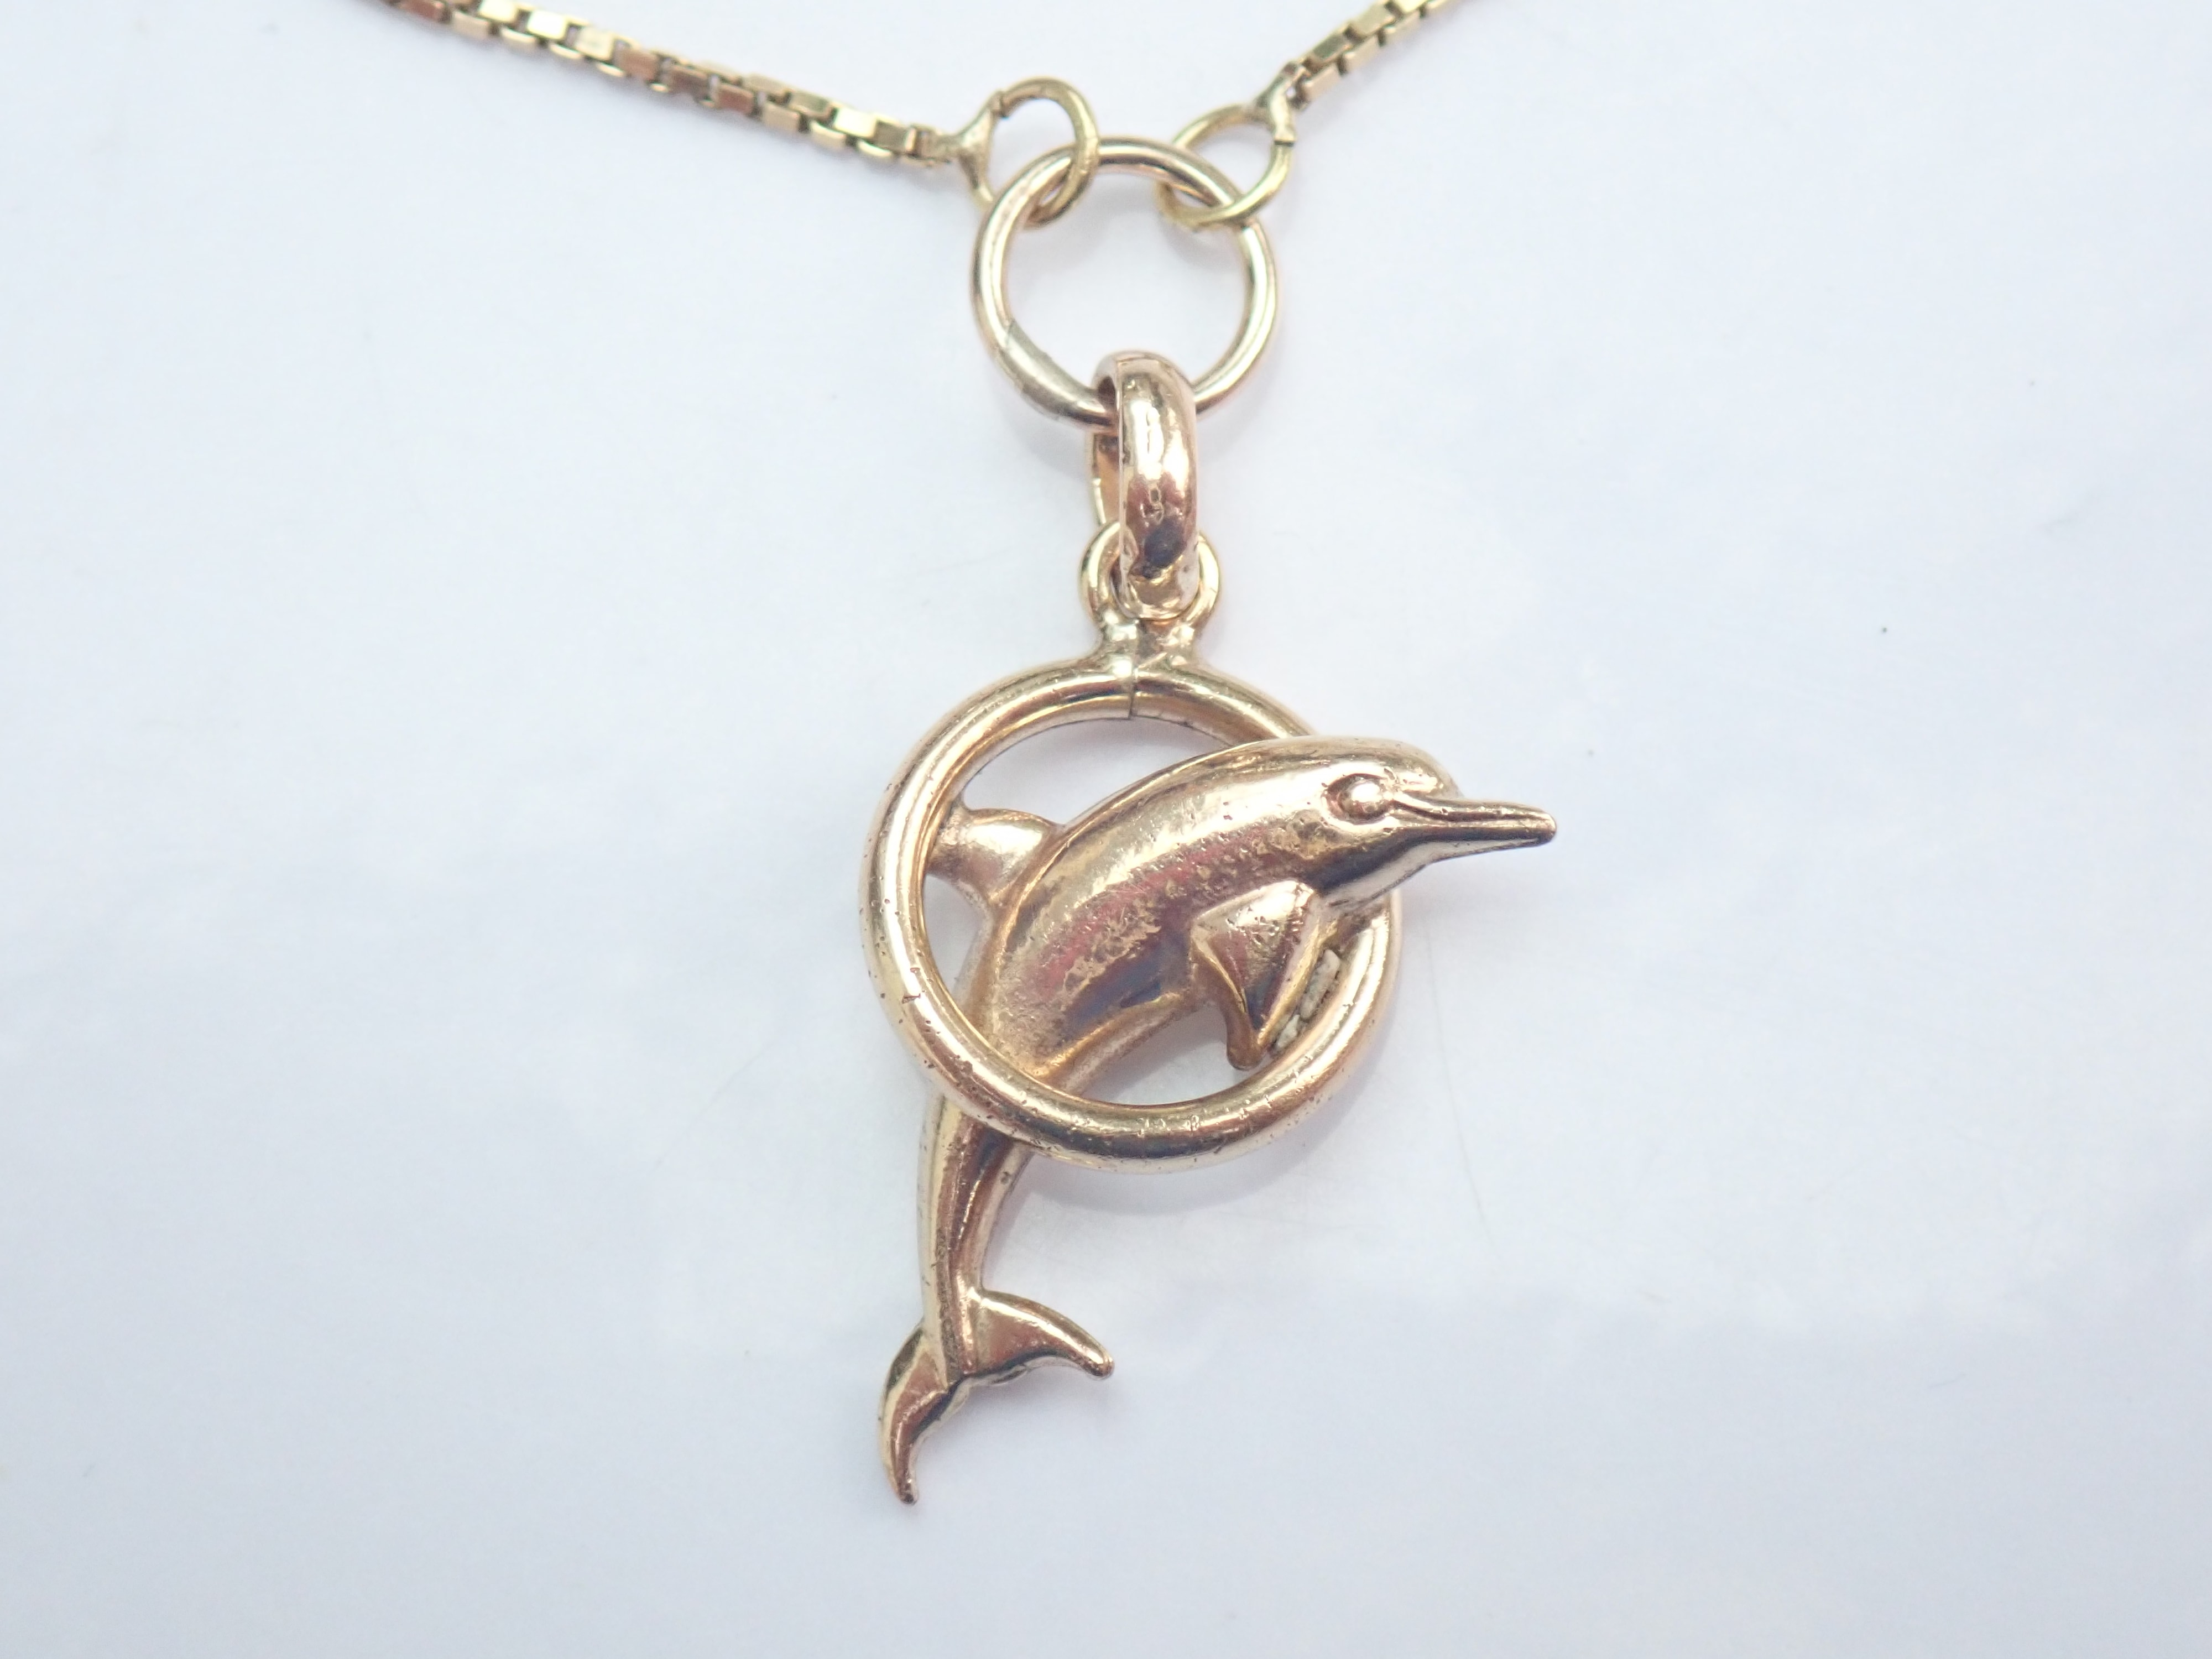 18ct Gold Dolphin Pendant and matching 17.5″ Box chain 3.25g #100